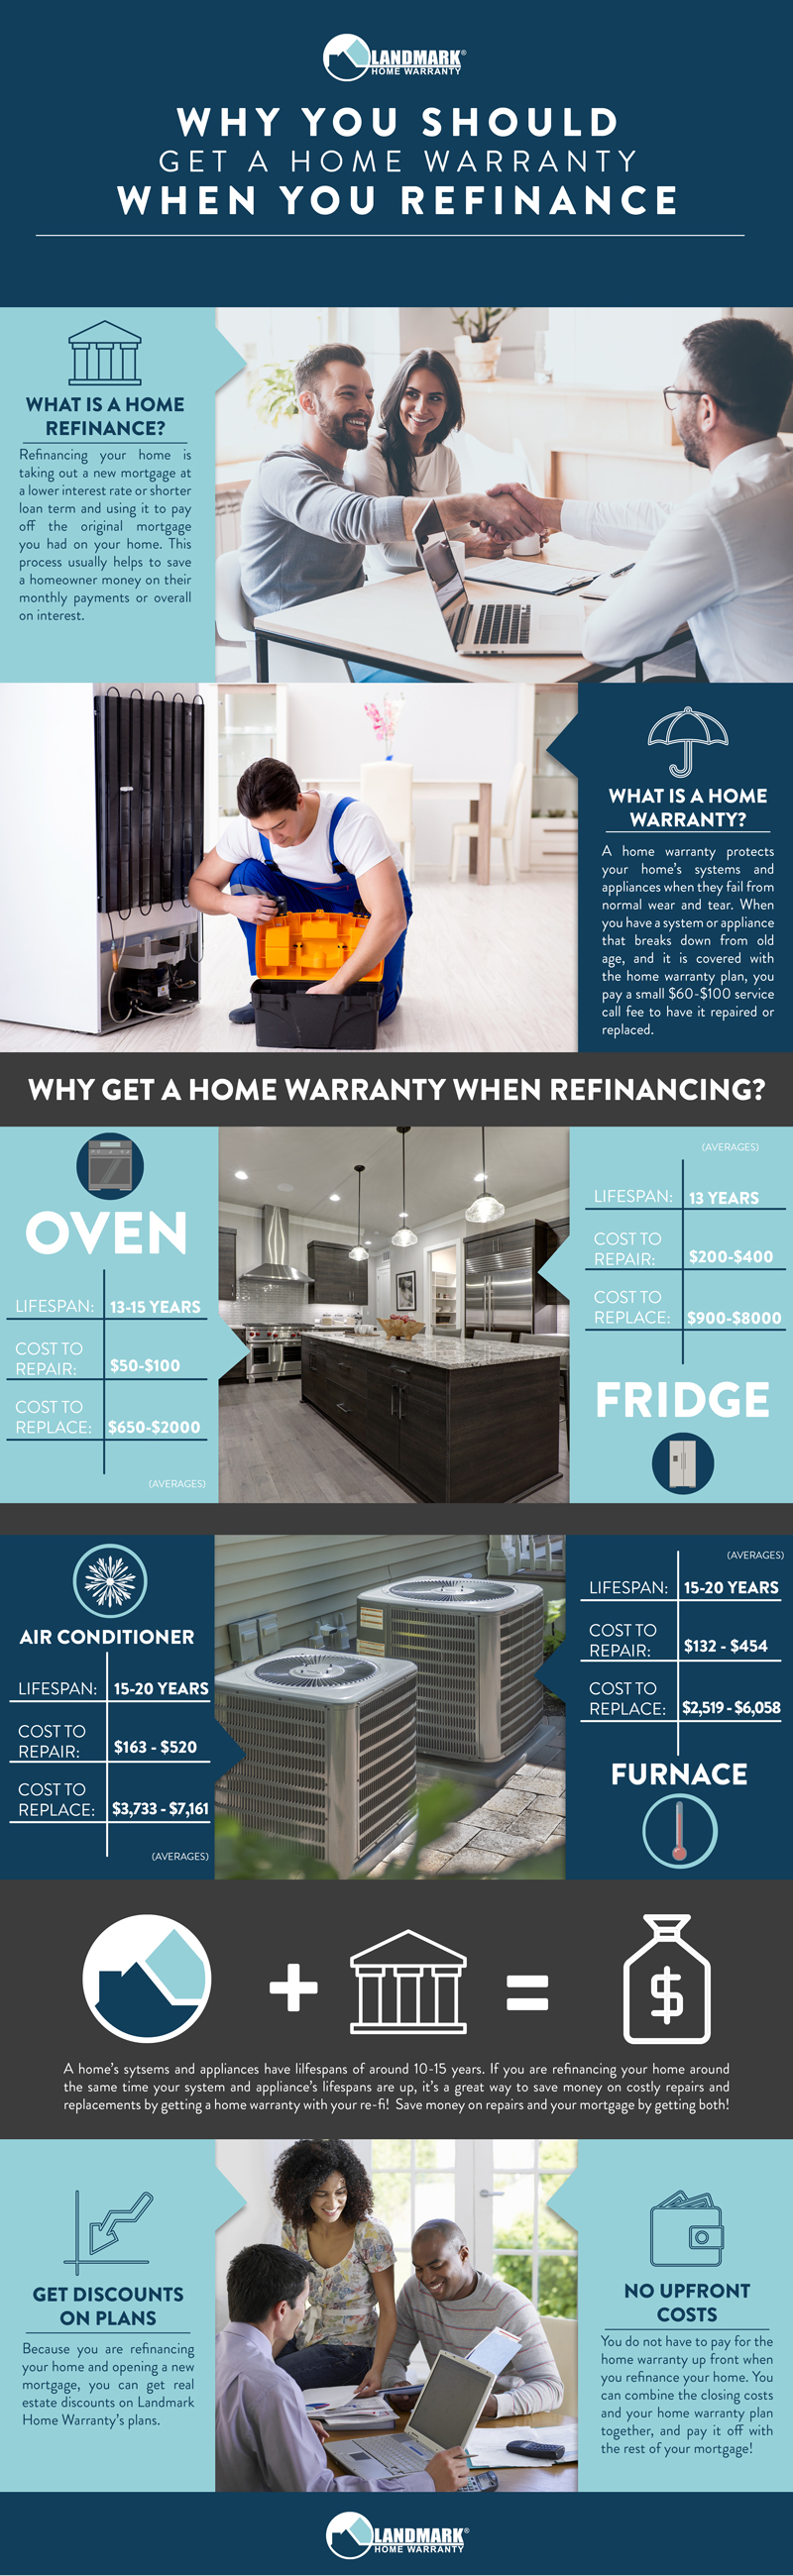 Why you should get a home warranty plan when you refinance your home.